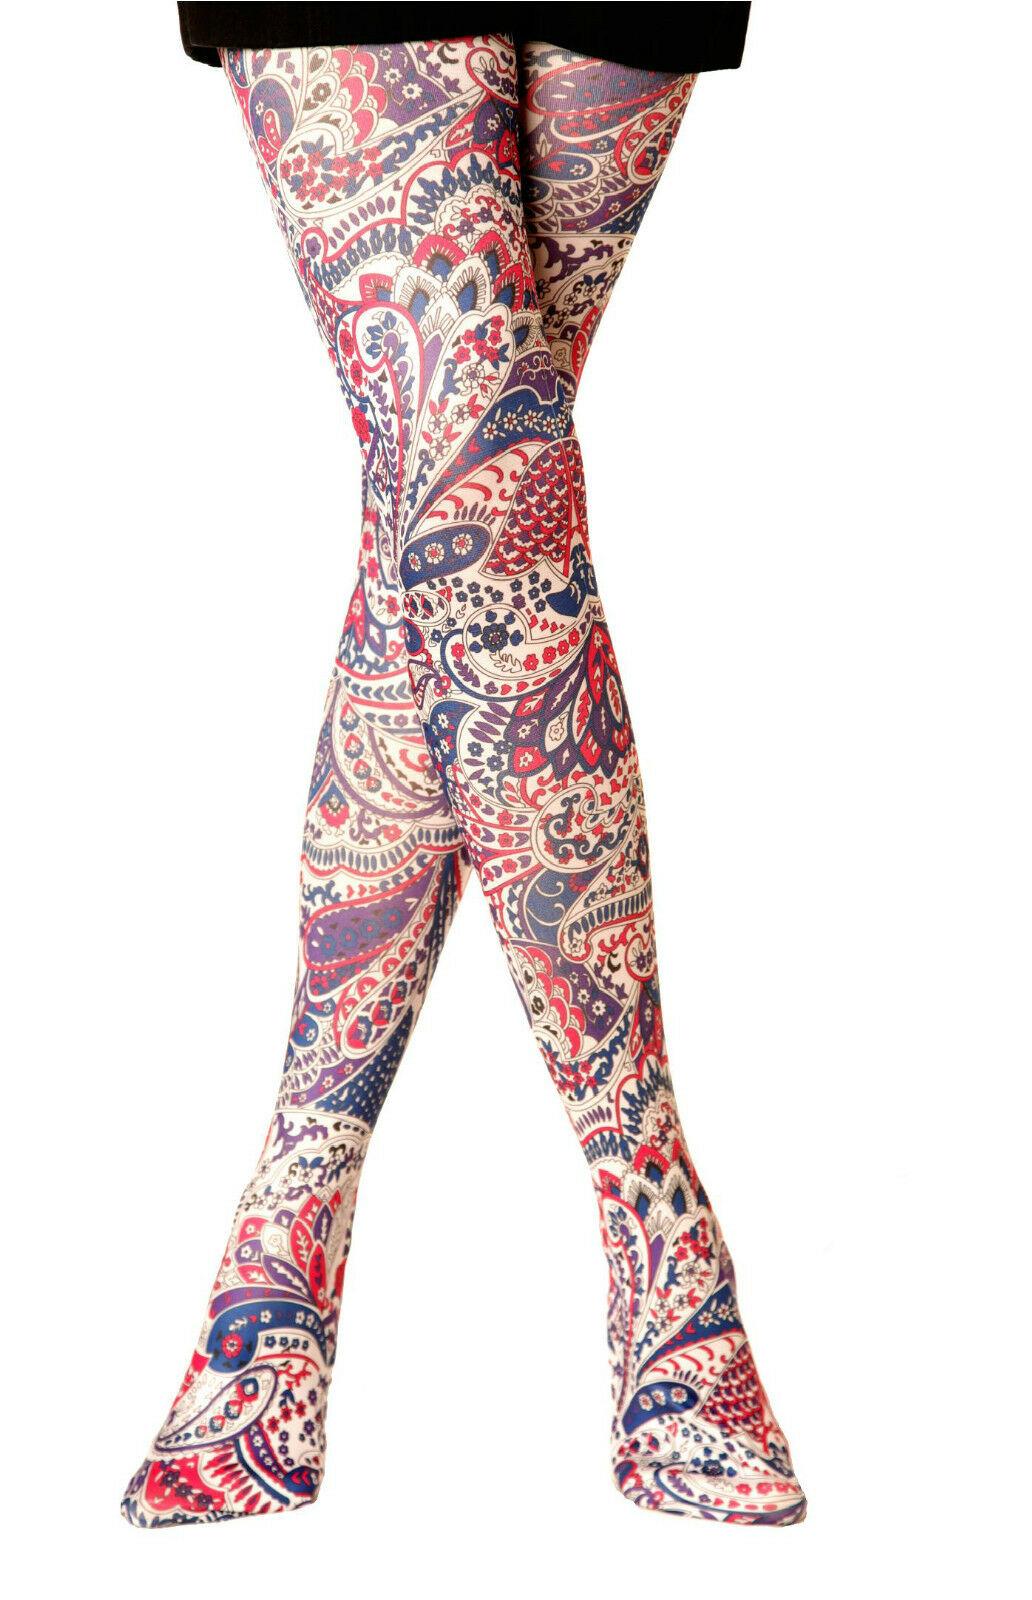 0cd5f1238 EXCLUSIVE NEW LADIES PRINTED TIGHTS 40 DEN VARIOUS COLOURS WOMENS STOCKINGS  | eBay